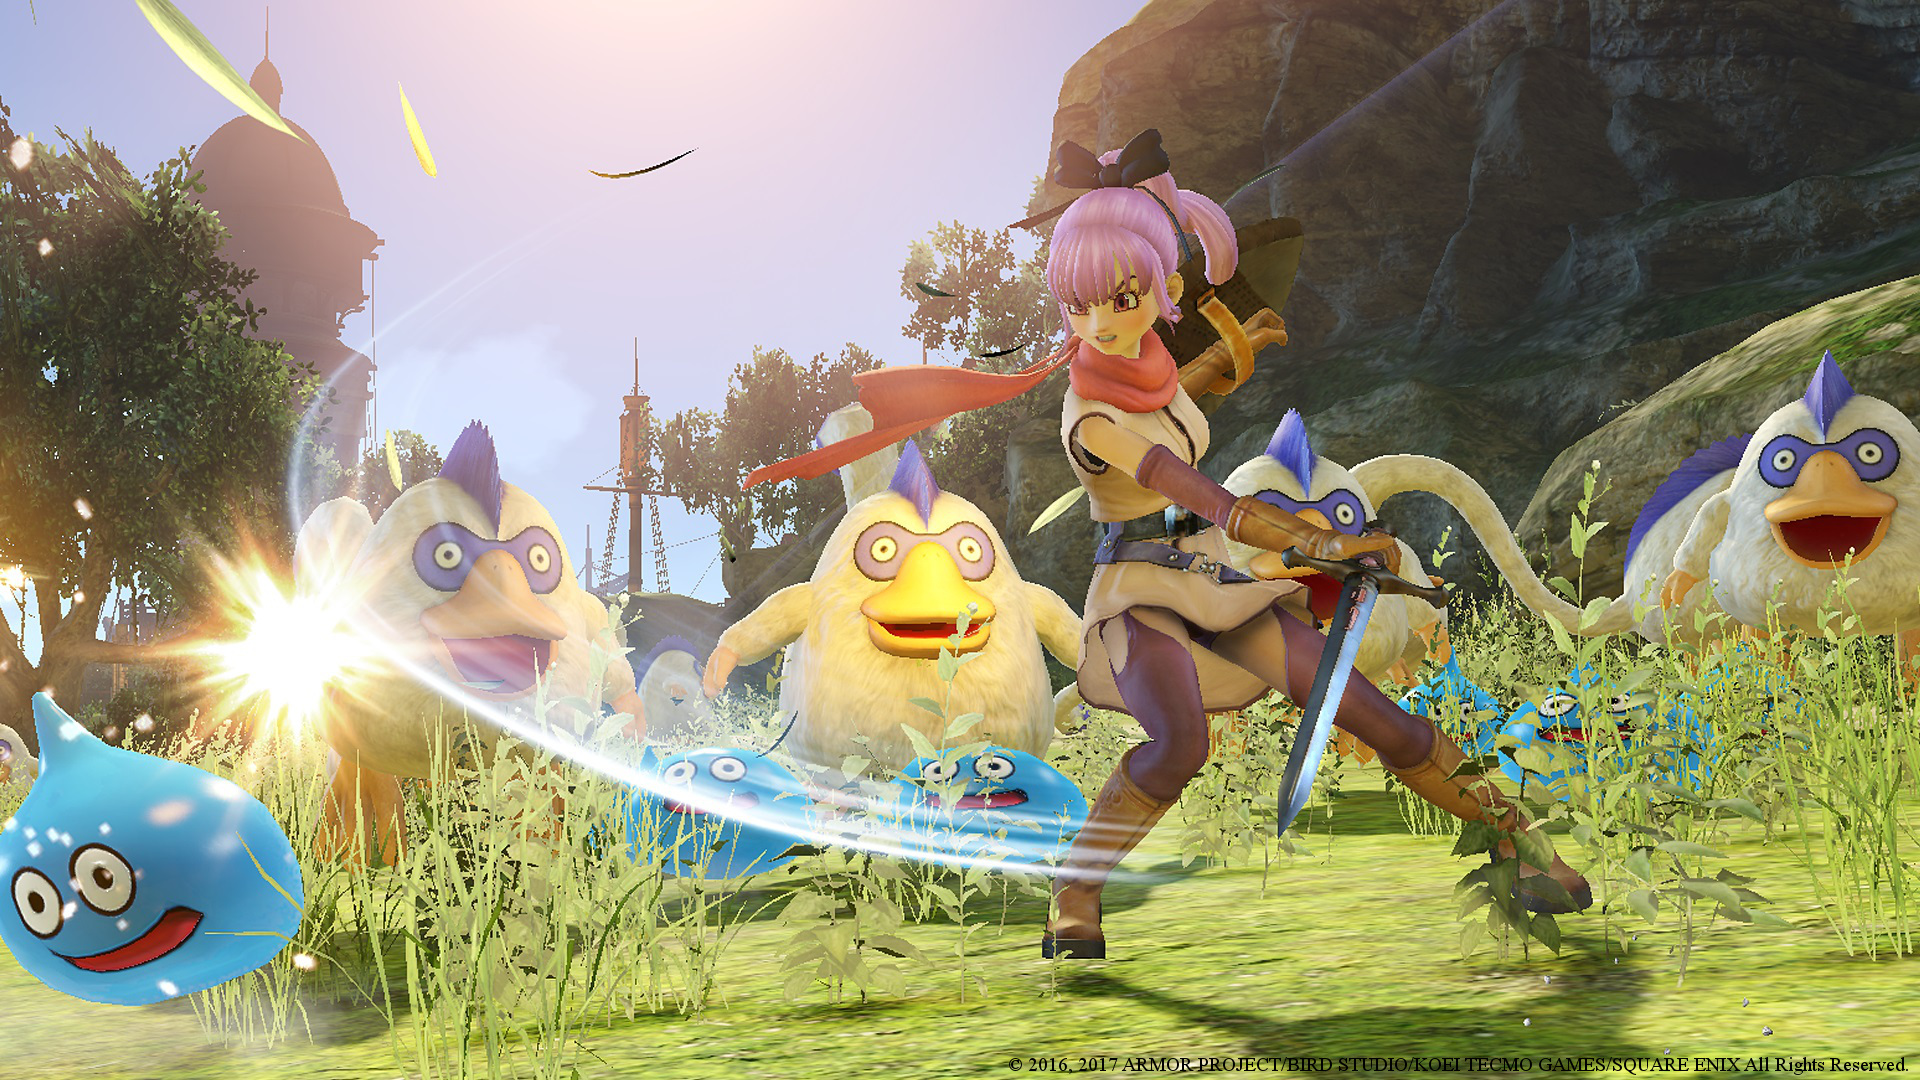 Dragon Quest Heroes Ii Confirmed For Pc New Trailer Released H=180 mm (7.02 in) release date: dragon quest heroes ii confirmed for pc